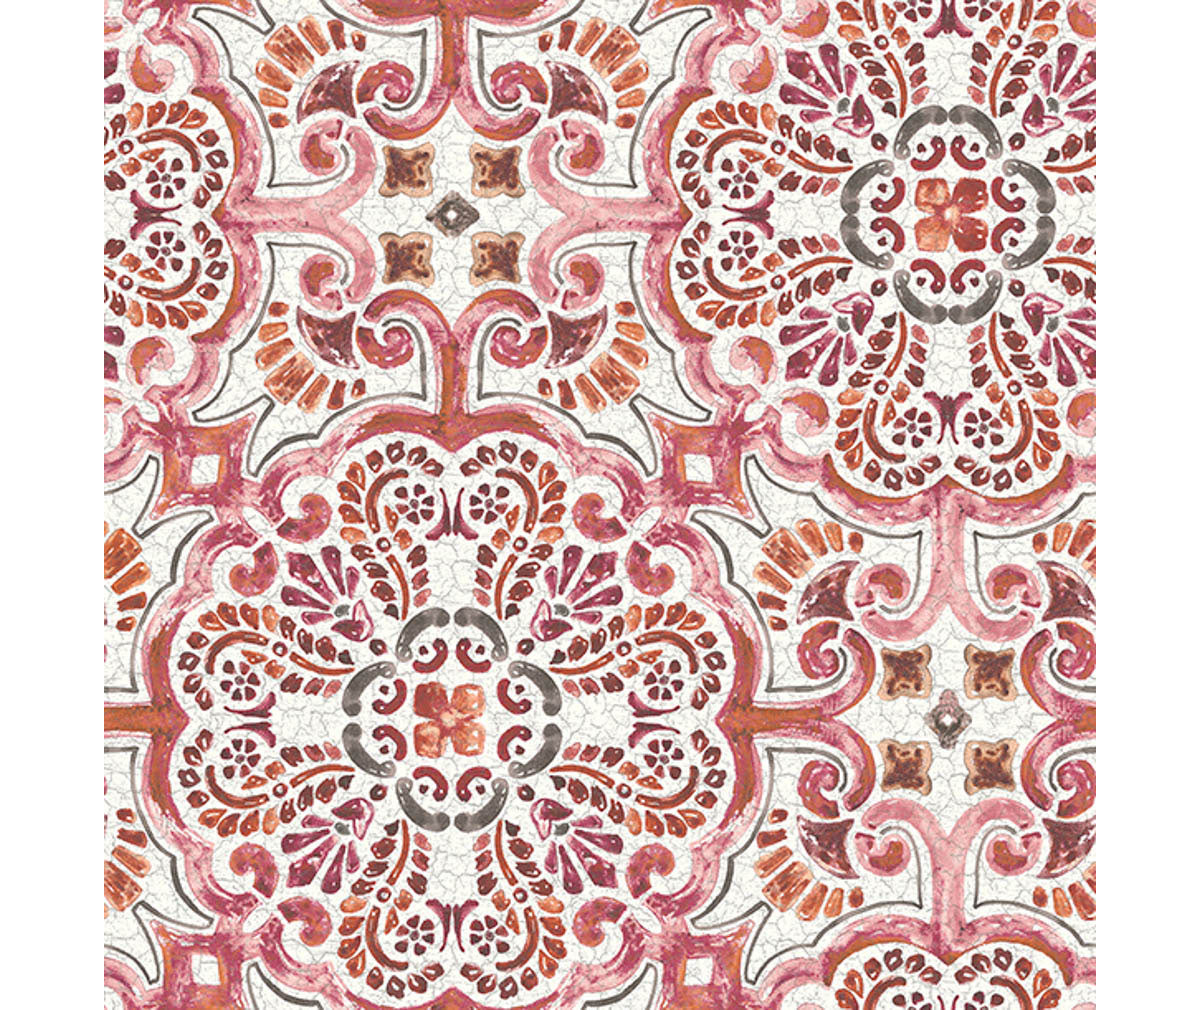 Florentine Pink Tile Wallpaper available at Barrydowne Paint